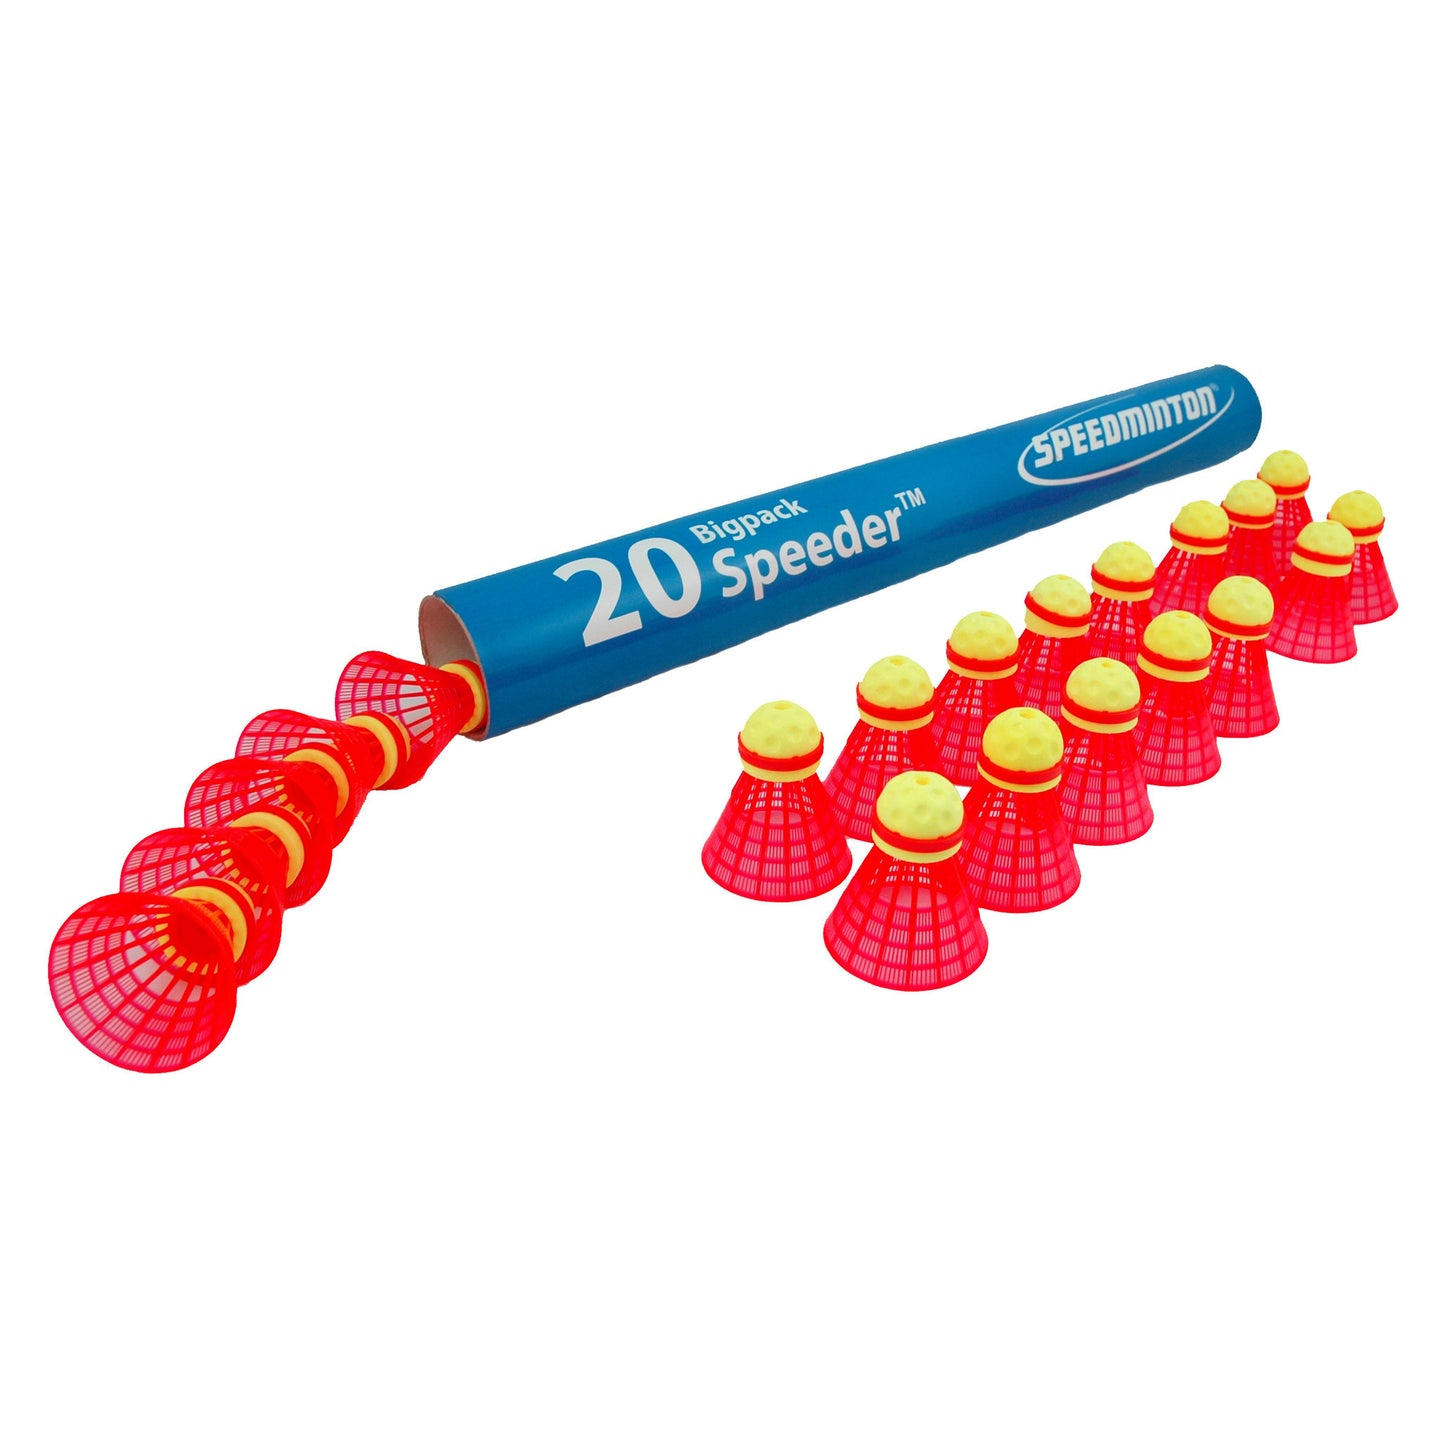 Speedminton® FUN Speeder™ (tube of 20)